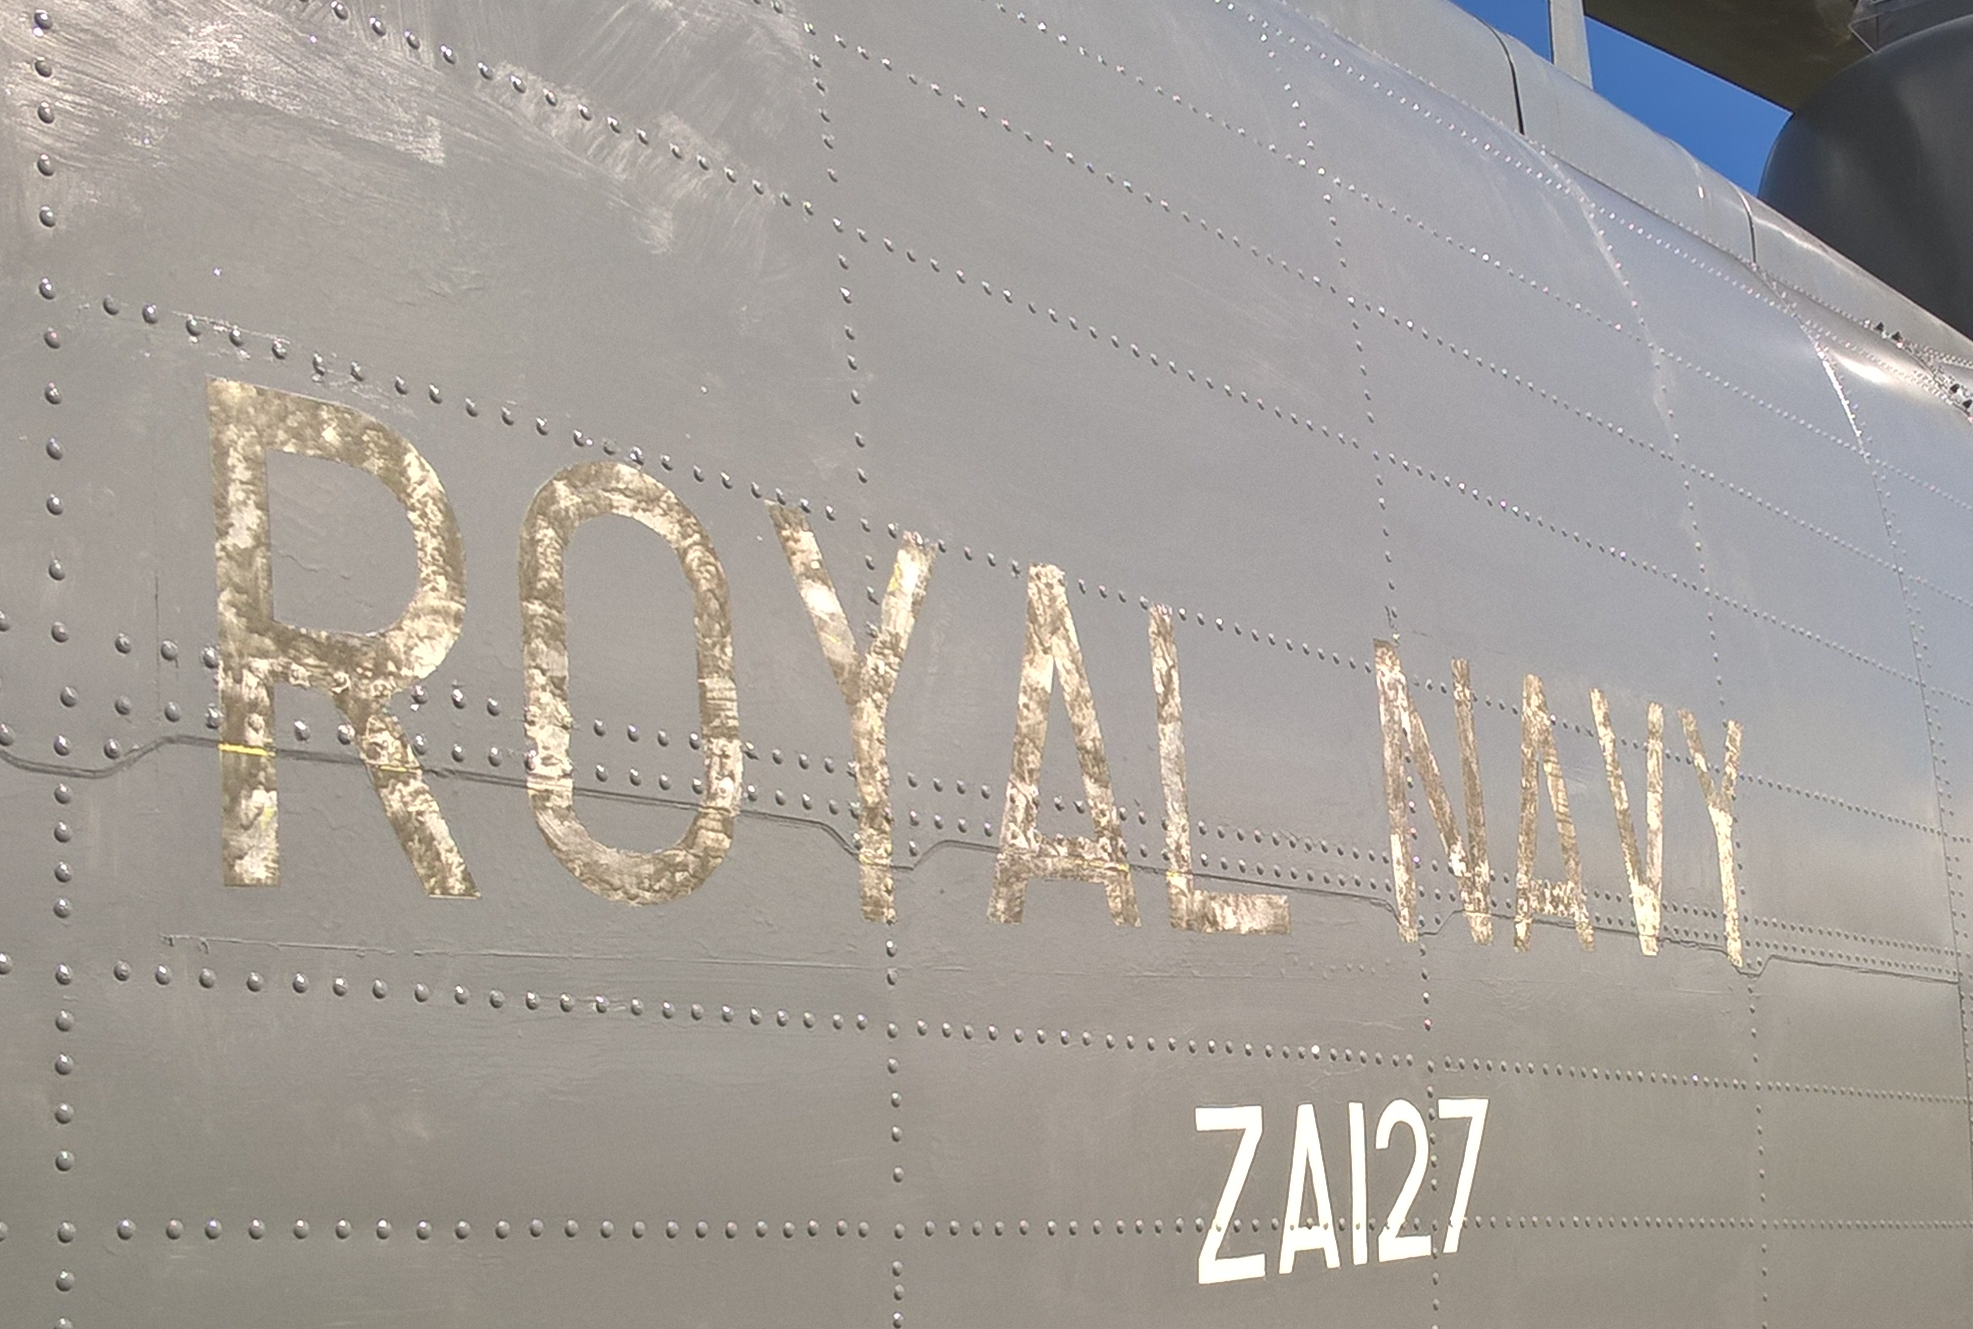 Royal Navy ZA127 Sea King Helicopter